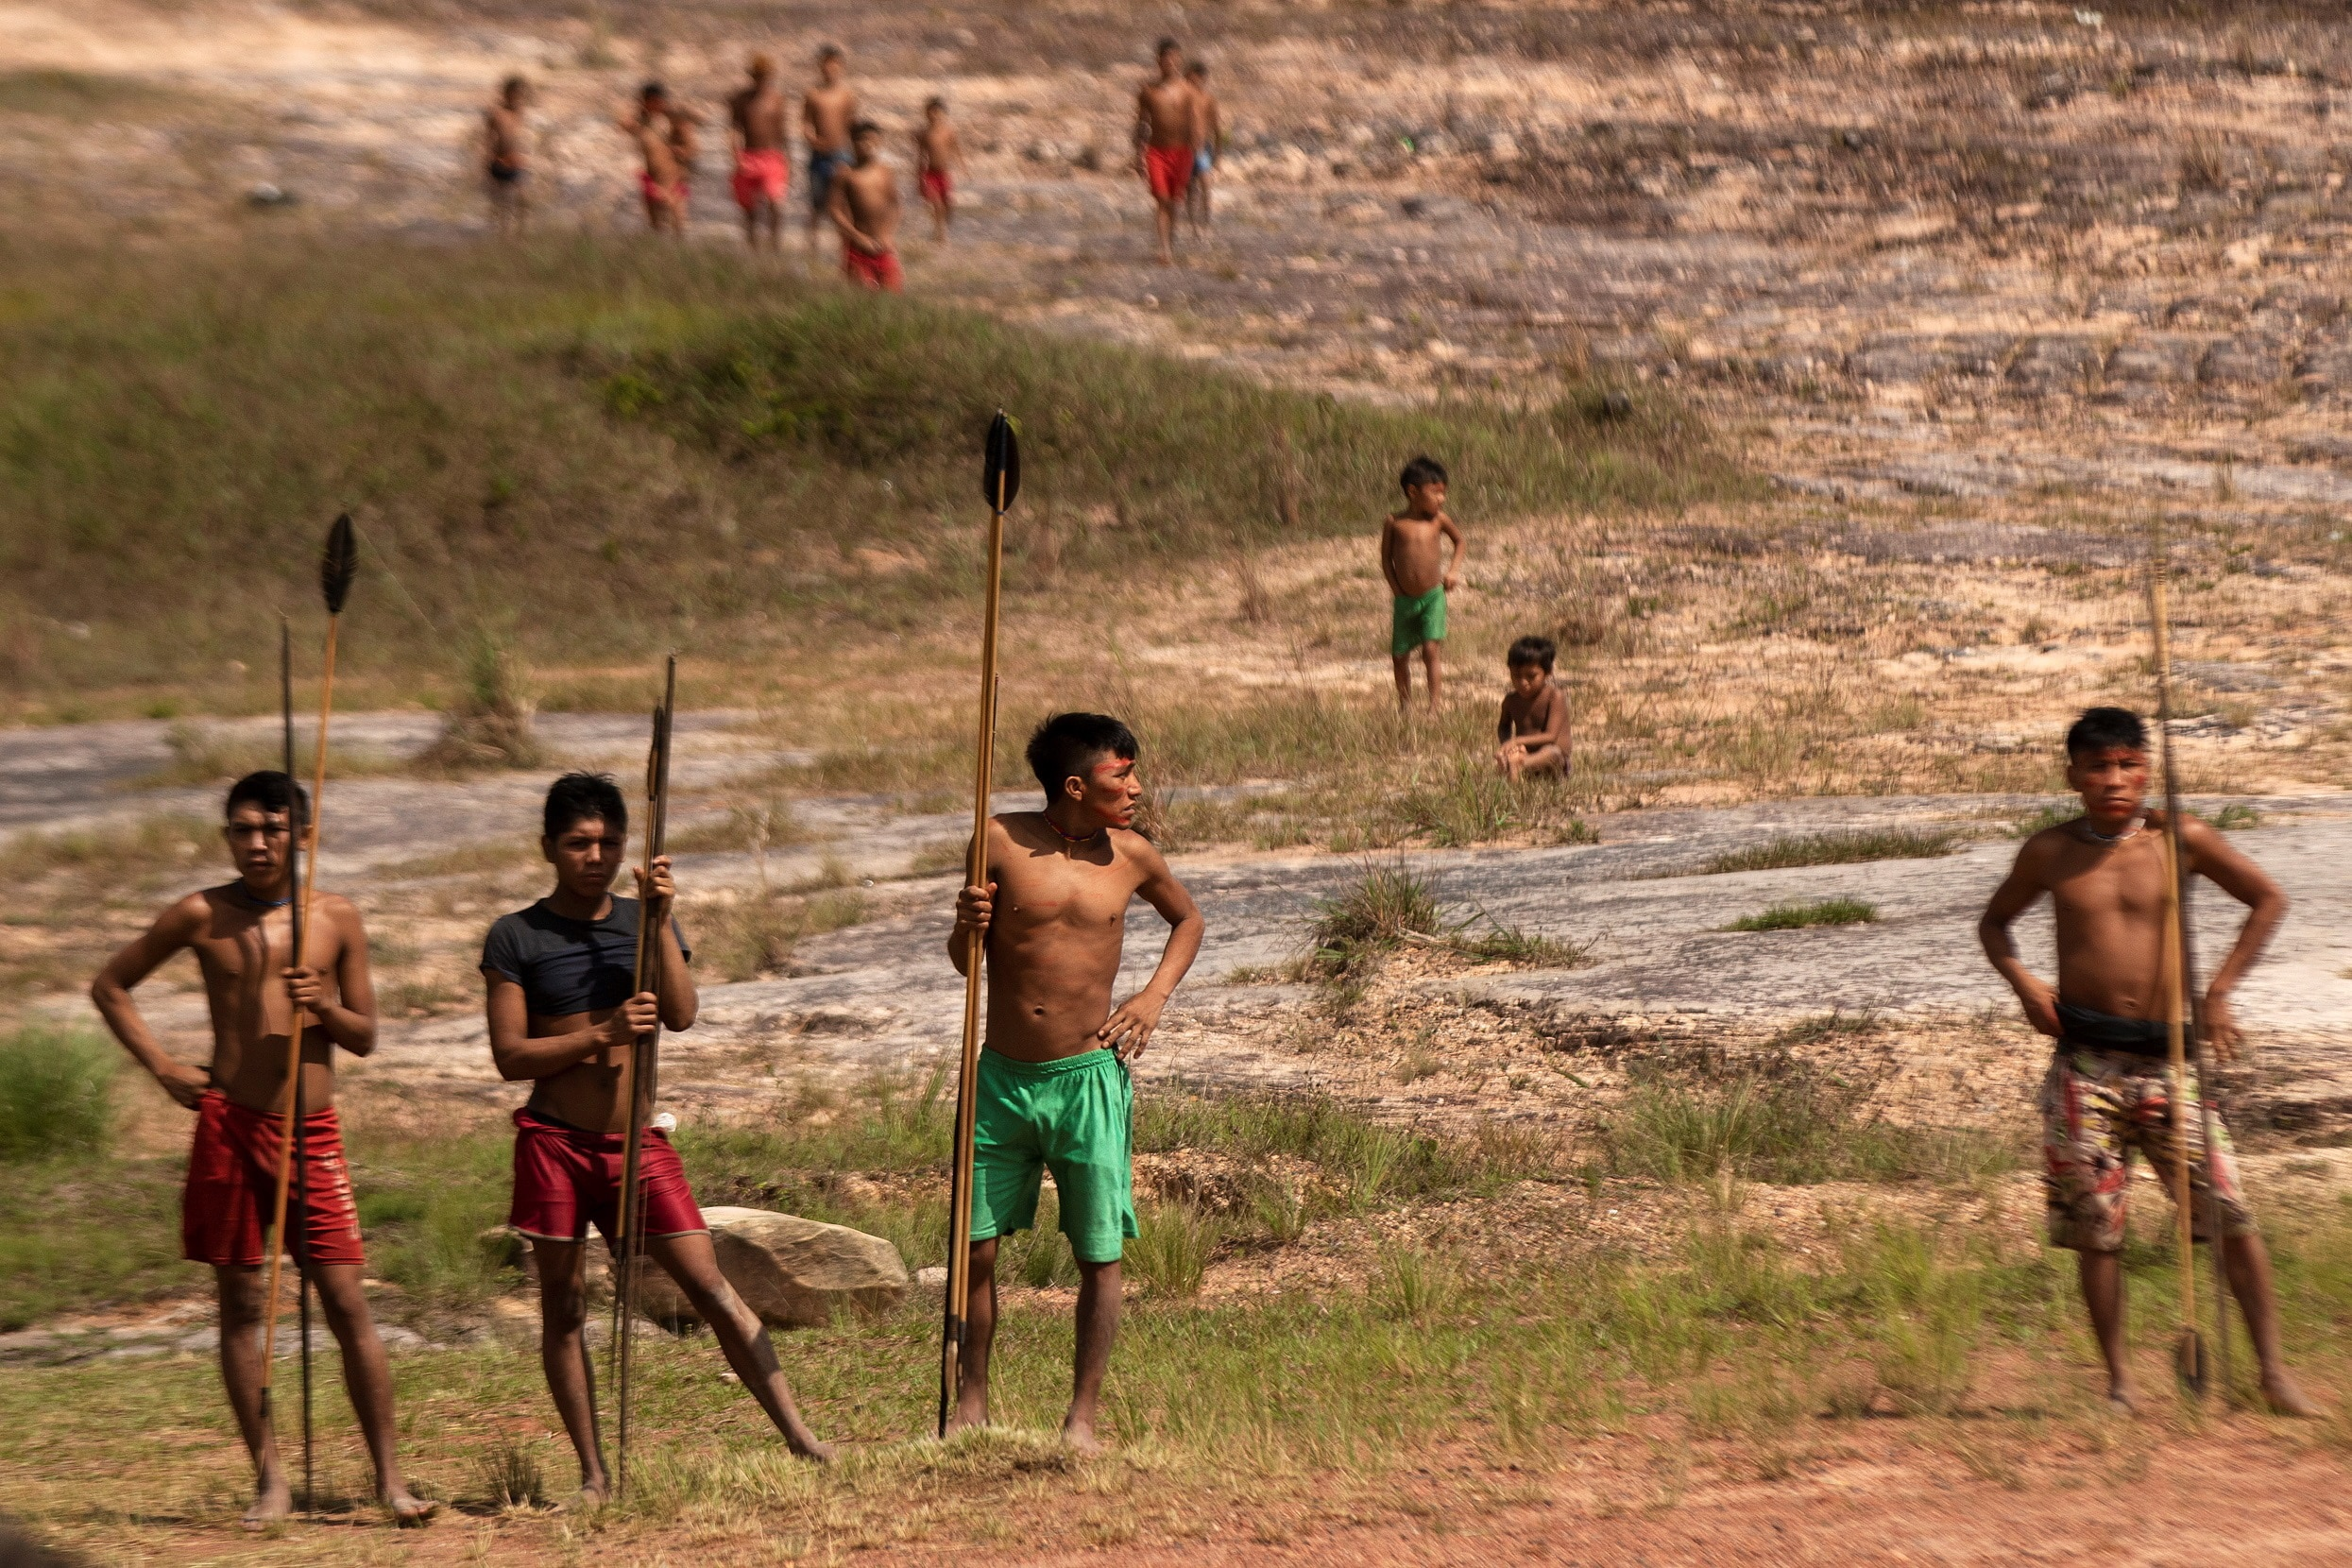 Members of the Yanomami people in northern Brazil.